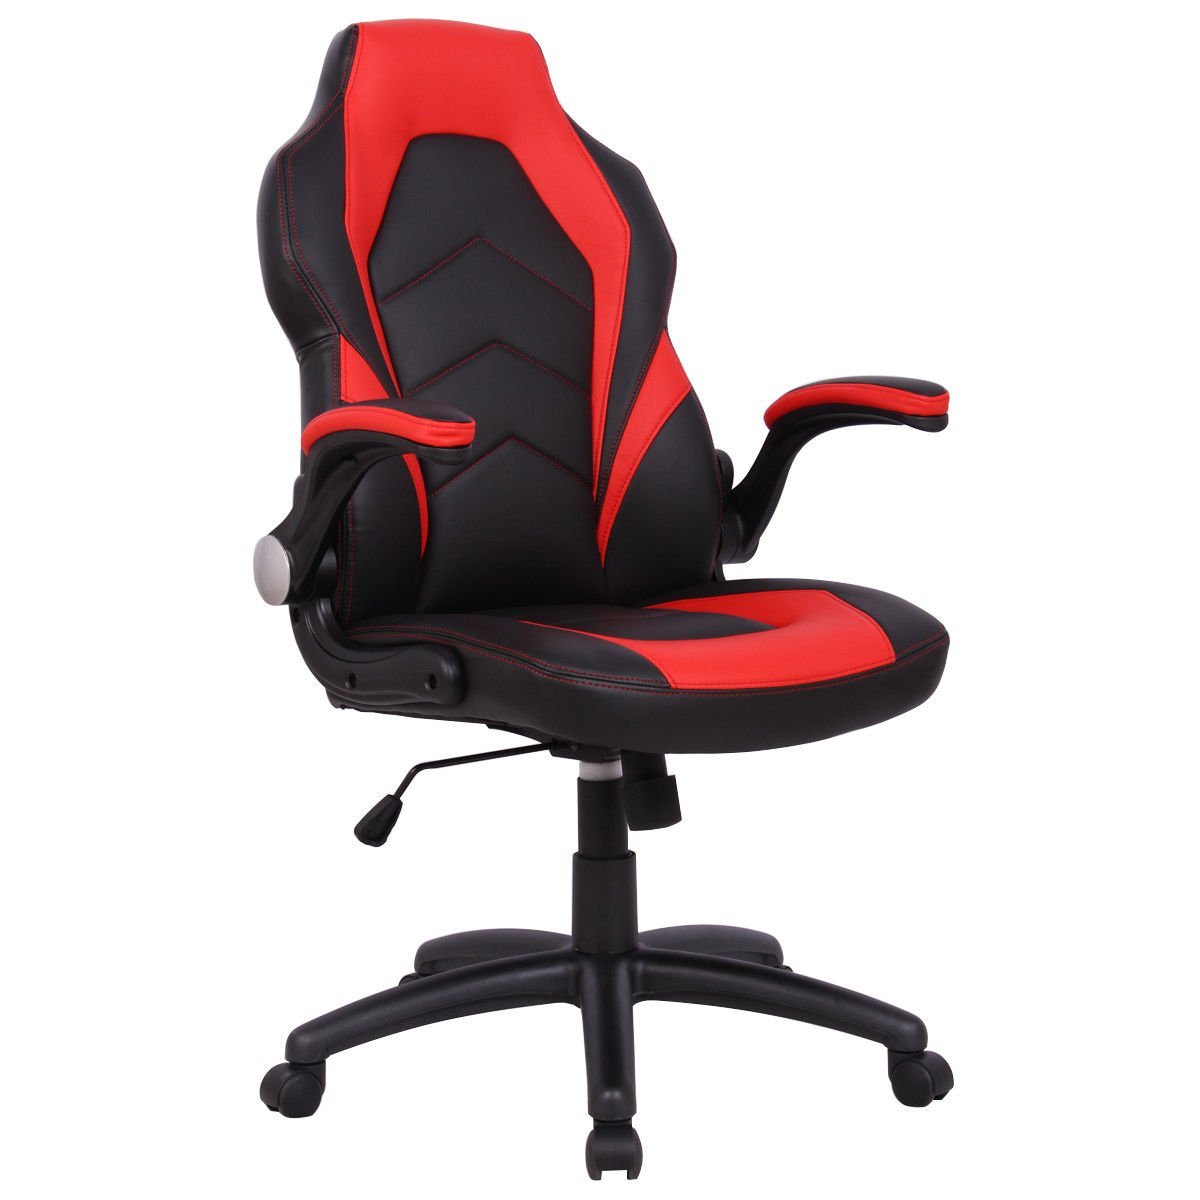 Giantex Gaming Chair Racing Chair High Back Swivel Adjustable Ergonomic Executive Gaming Desk Office Chair with Bucket Seat (Red)